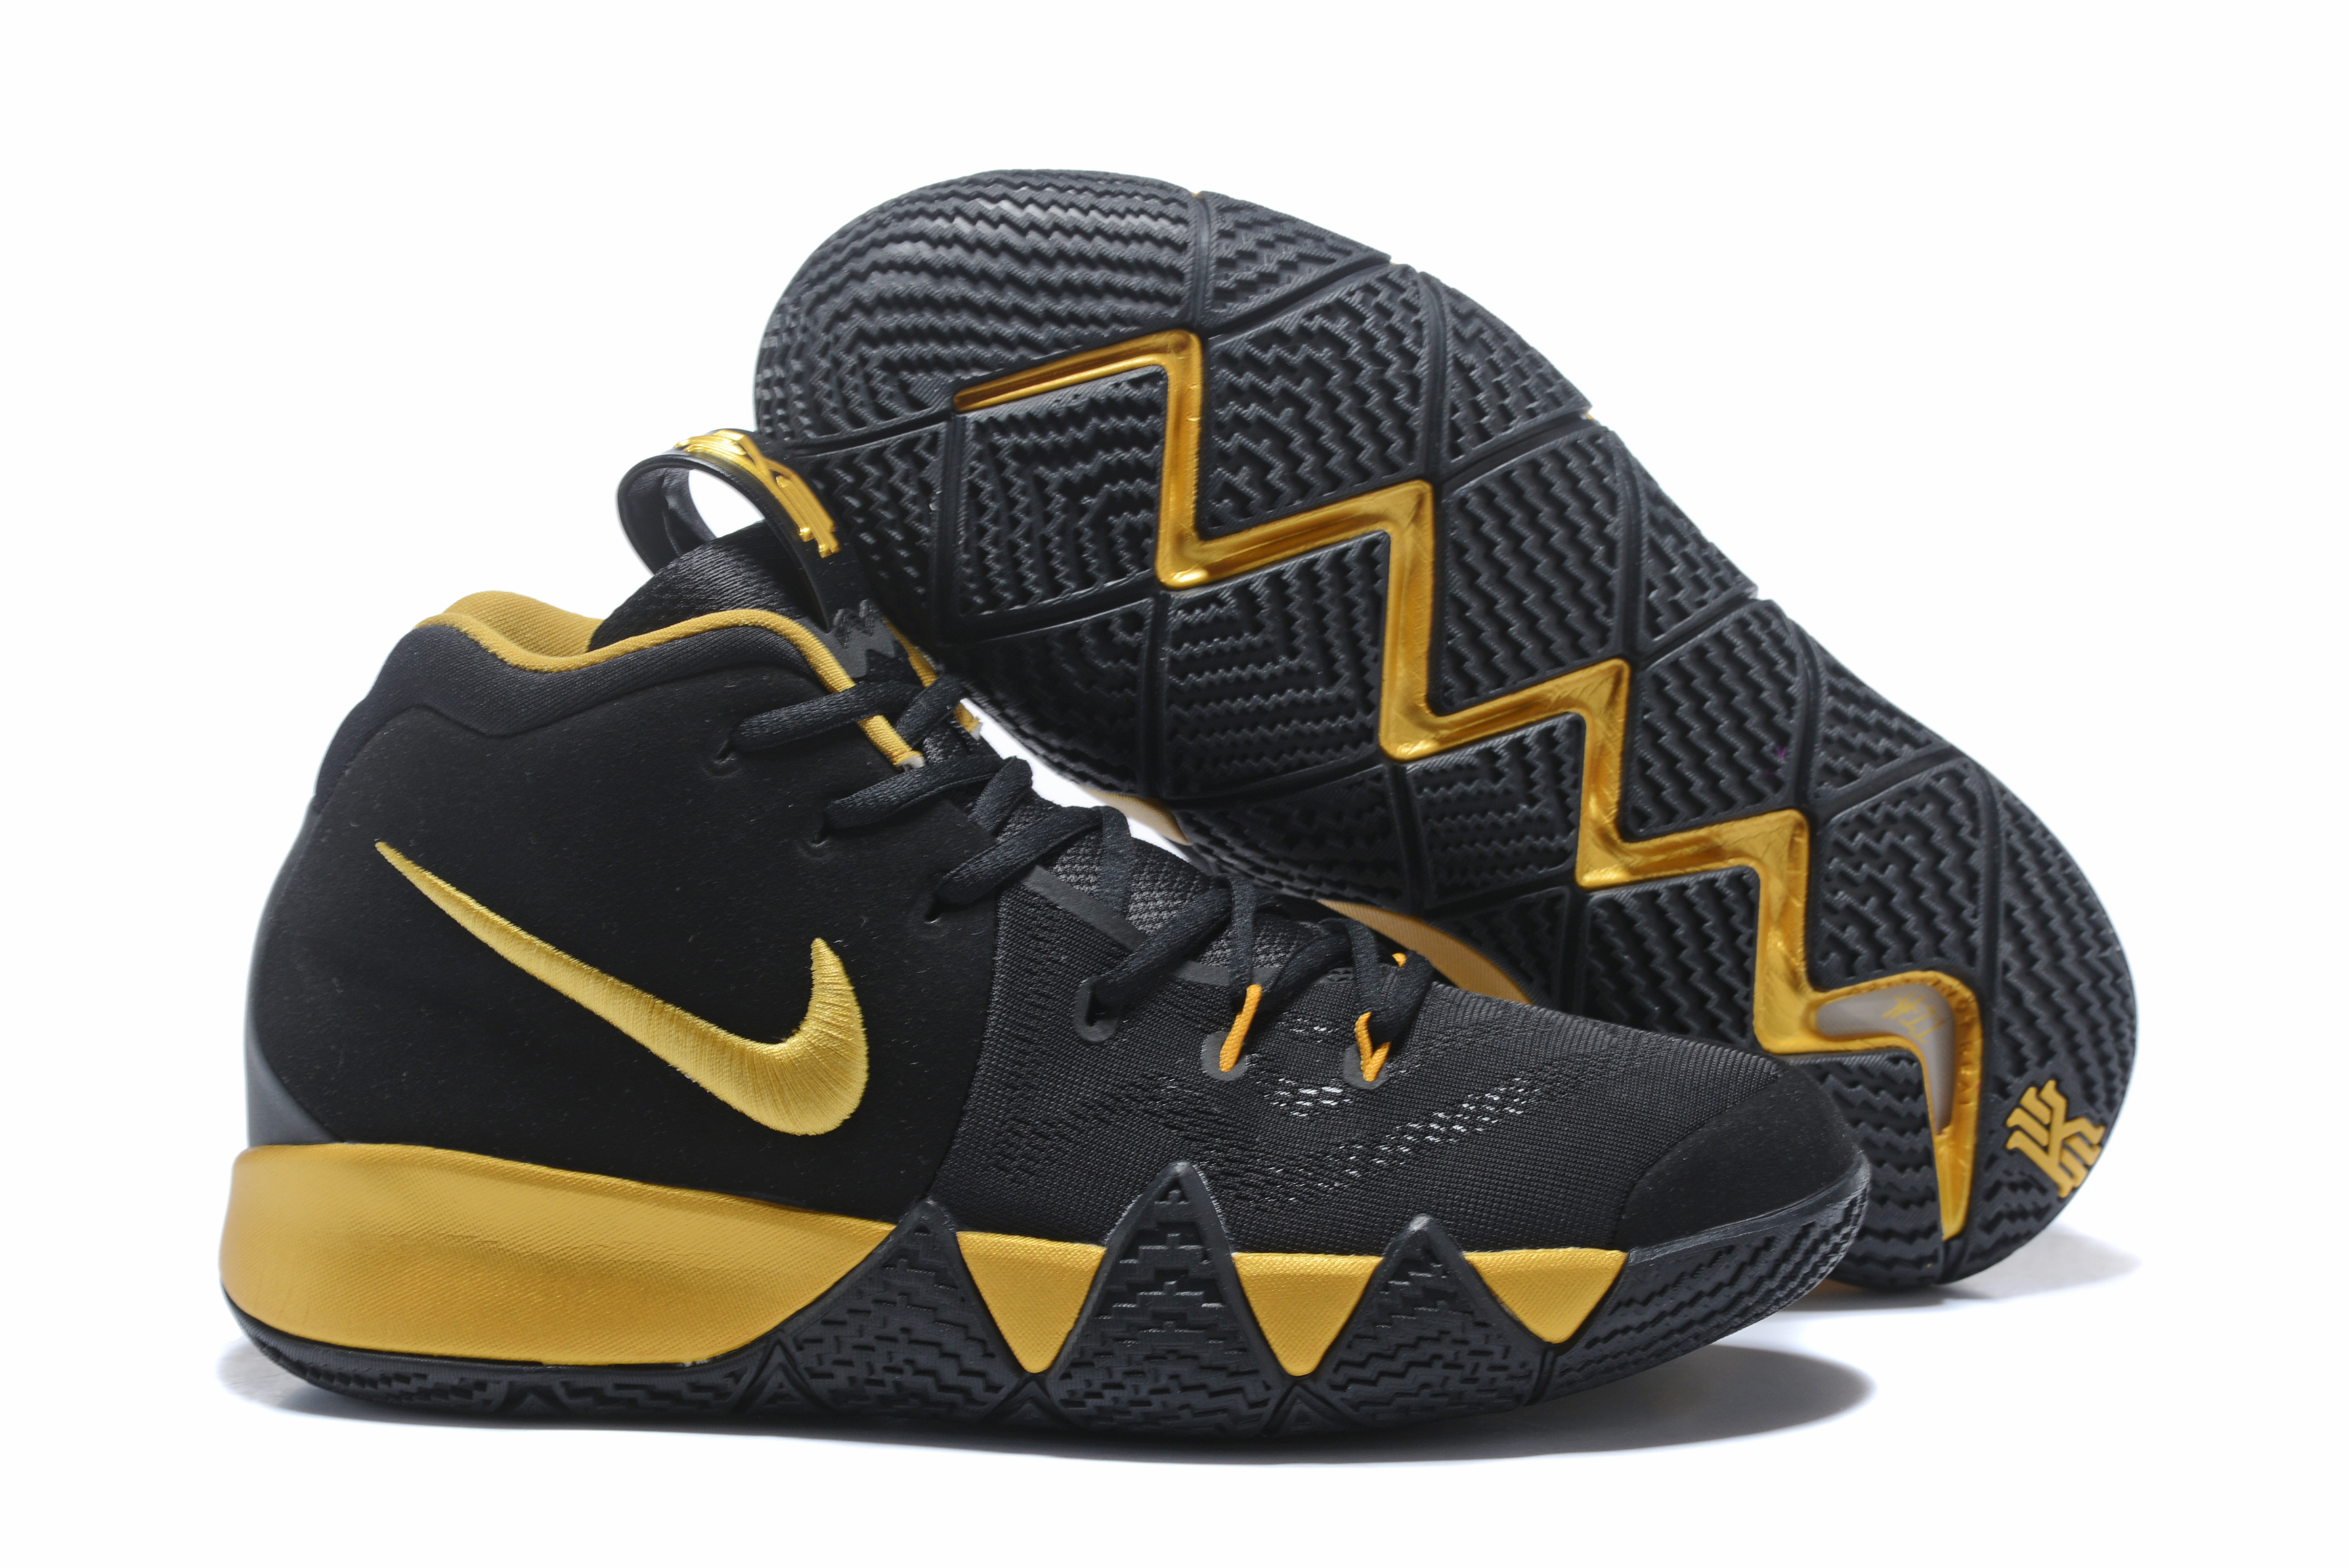 2018 Nike Kyrie 4 Black Gold Shoes